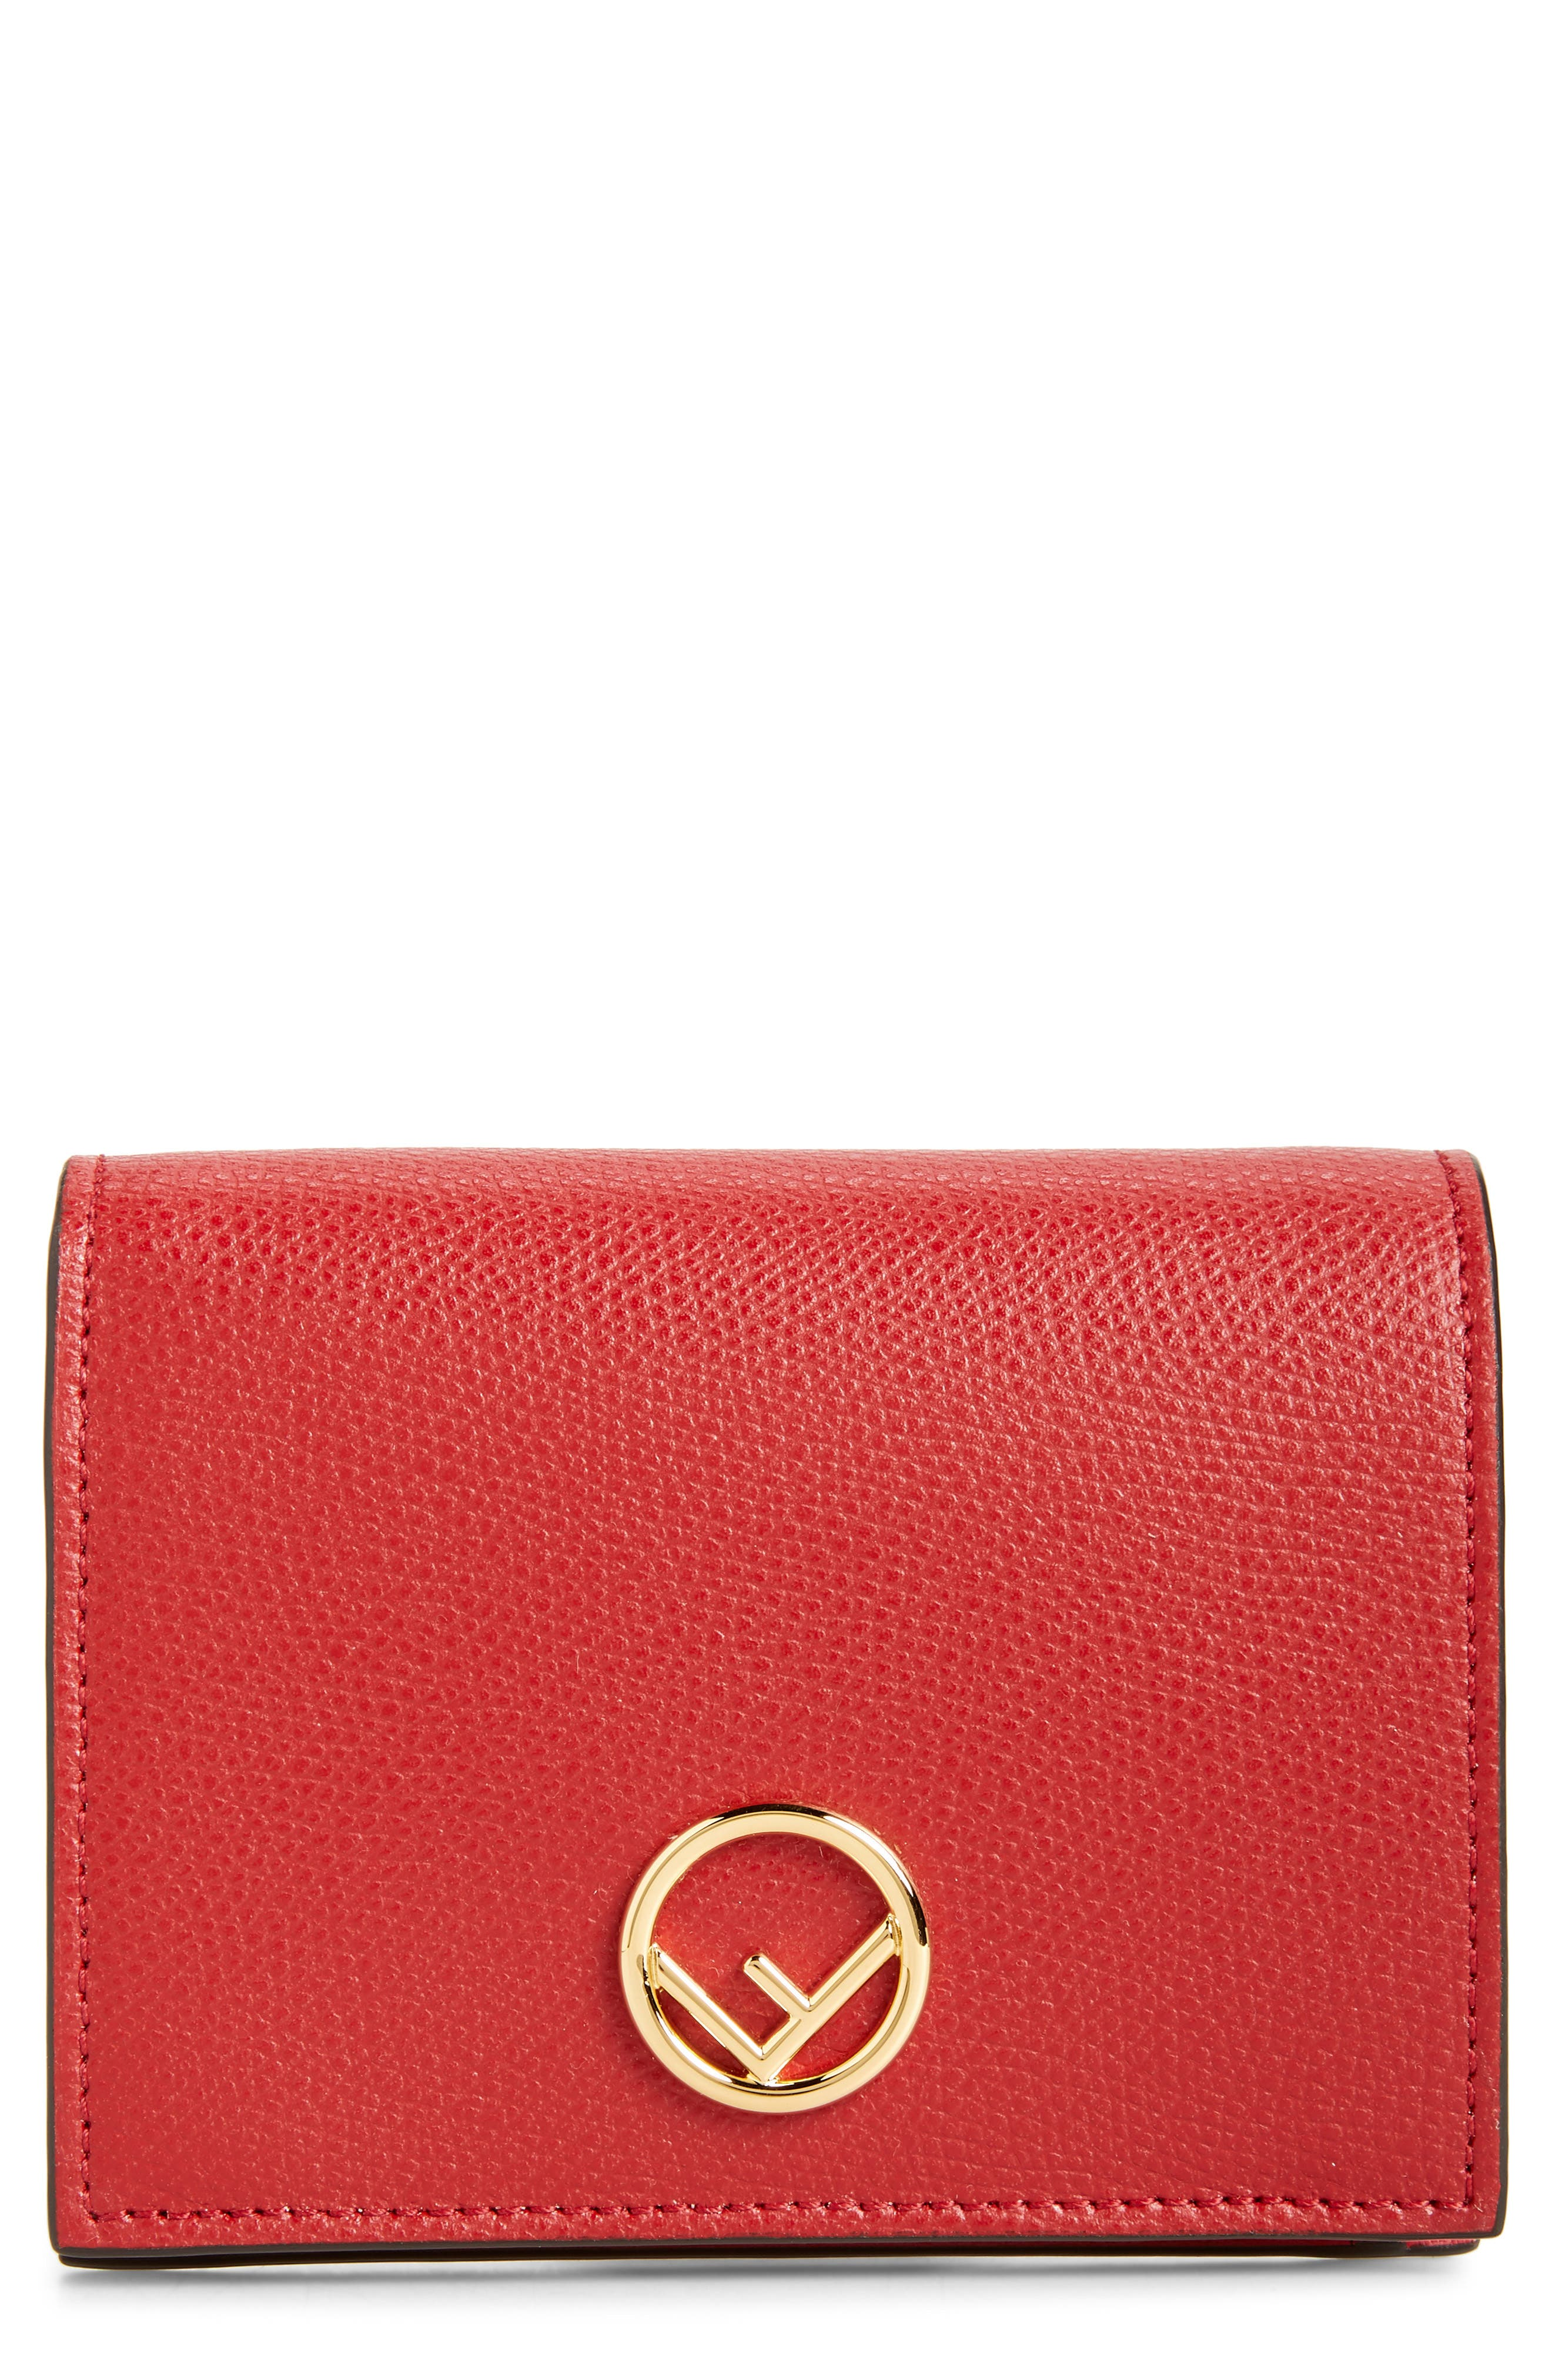 Logo Small Leather French Wallet,                             Main thumbnail 1, color,                             FRAGOLA/ ORO SOFT